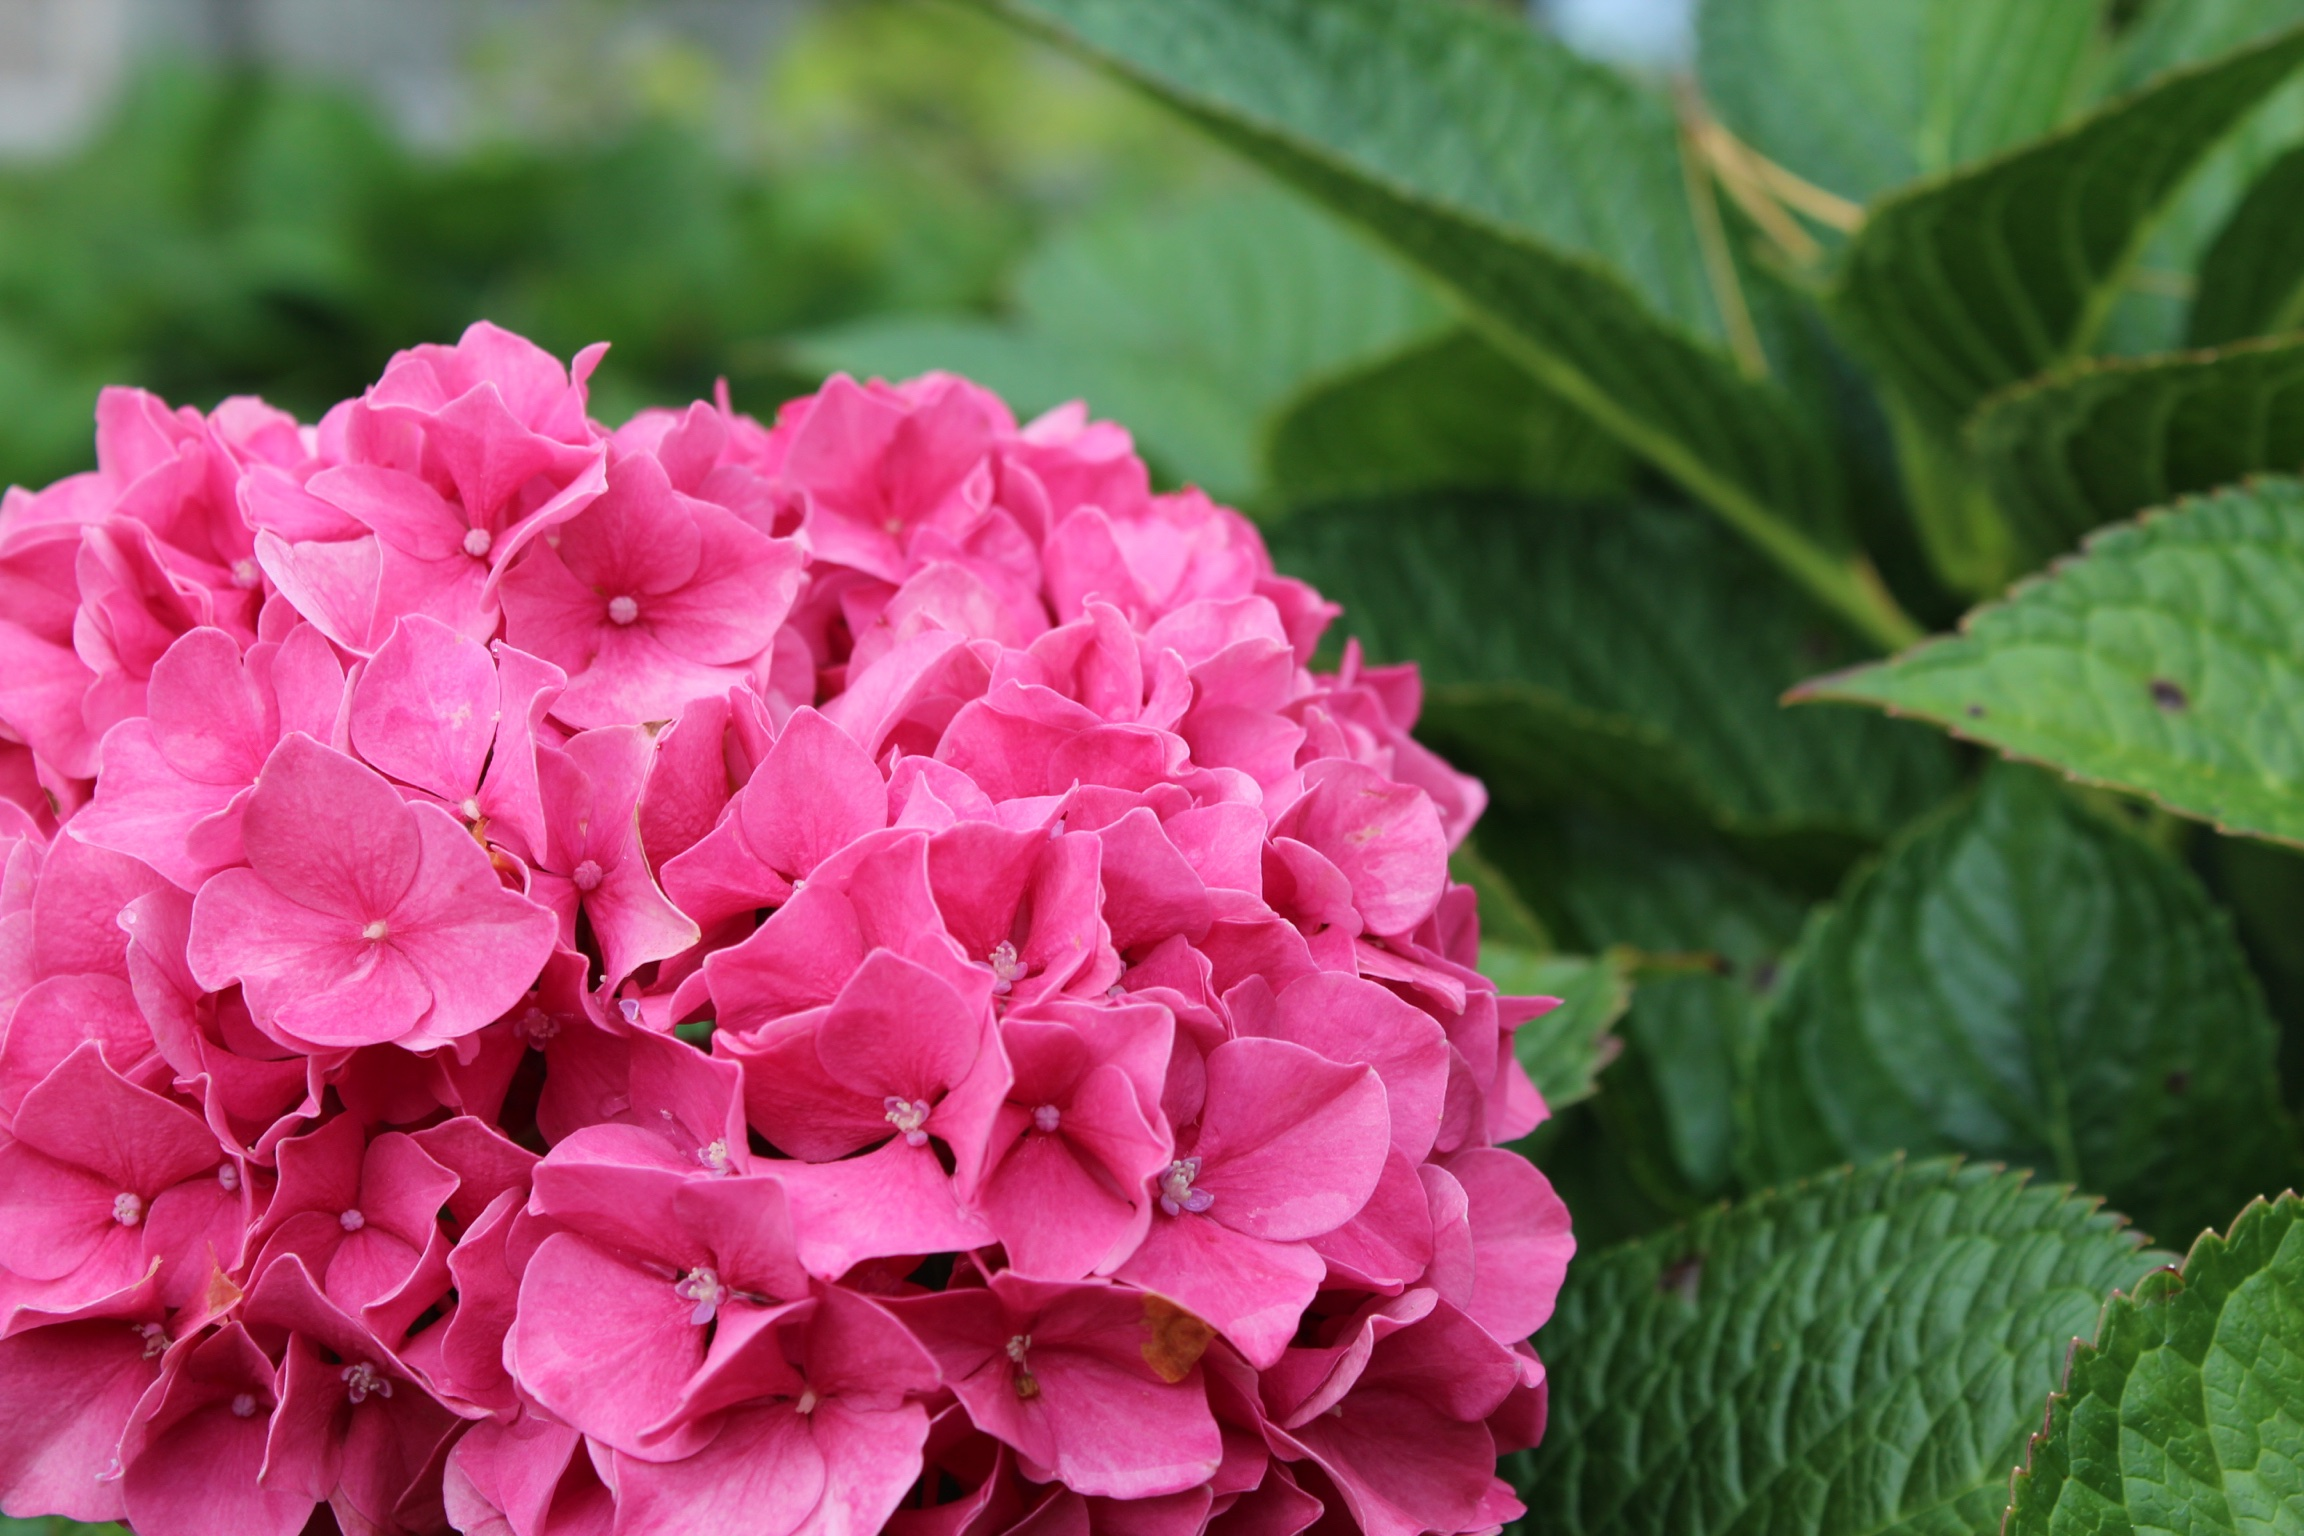 Chatham Home Pink Hydrangeas in Bloom